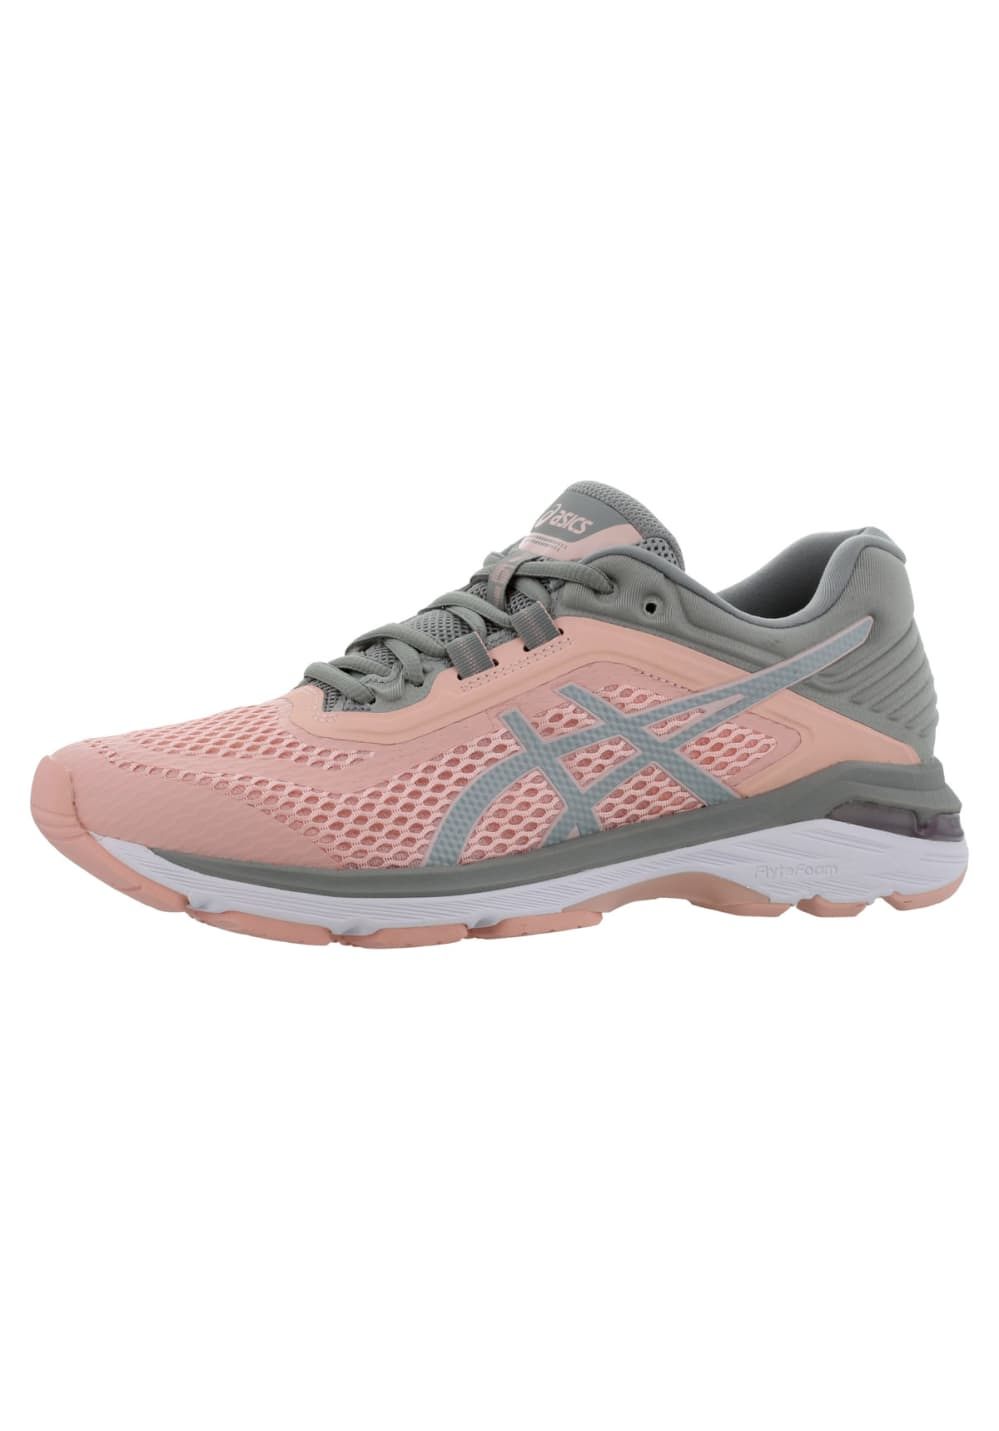 info for 67362 e6a08 ASICS GT-2000 6 - Running shoes for Women - Pink